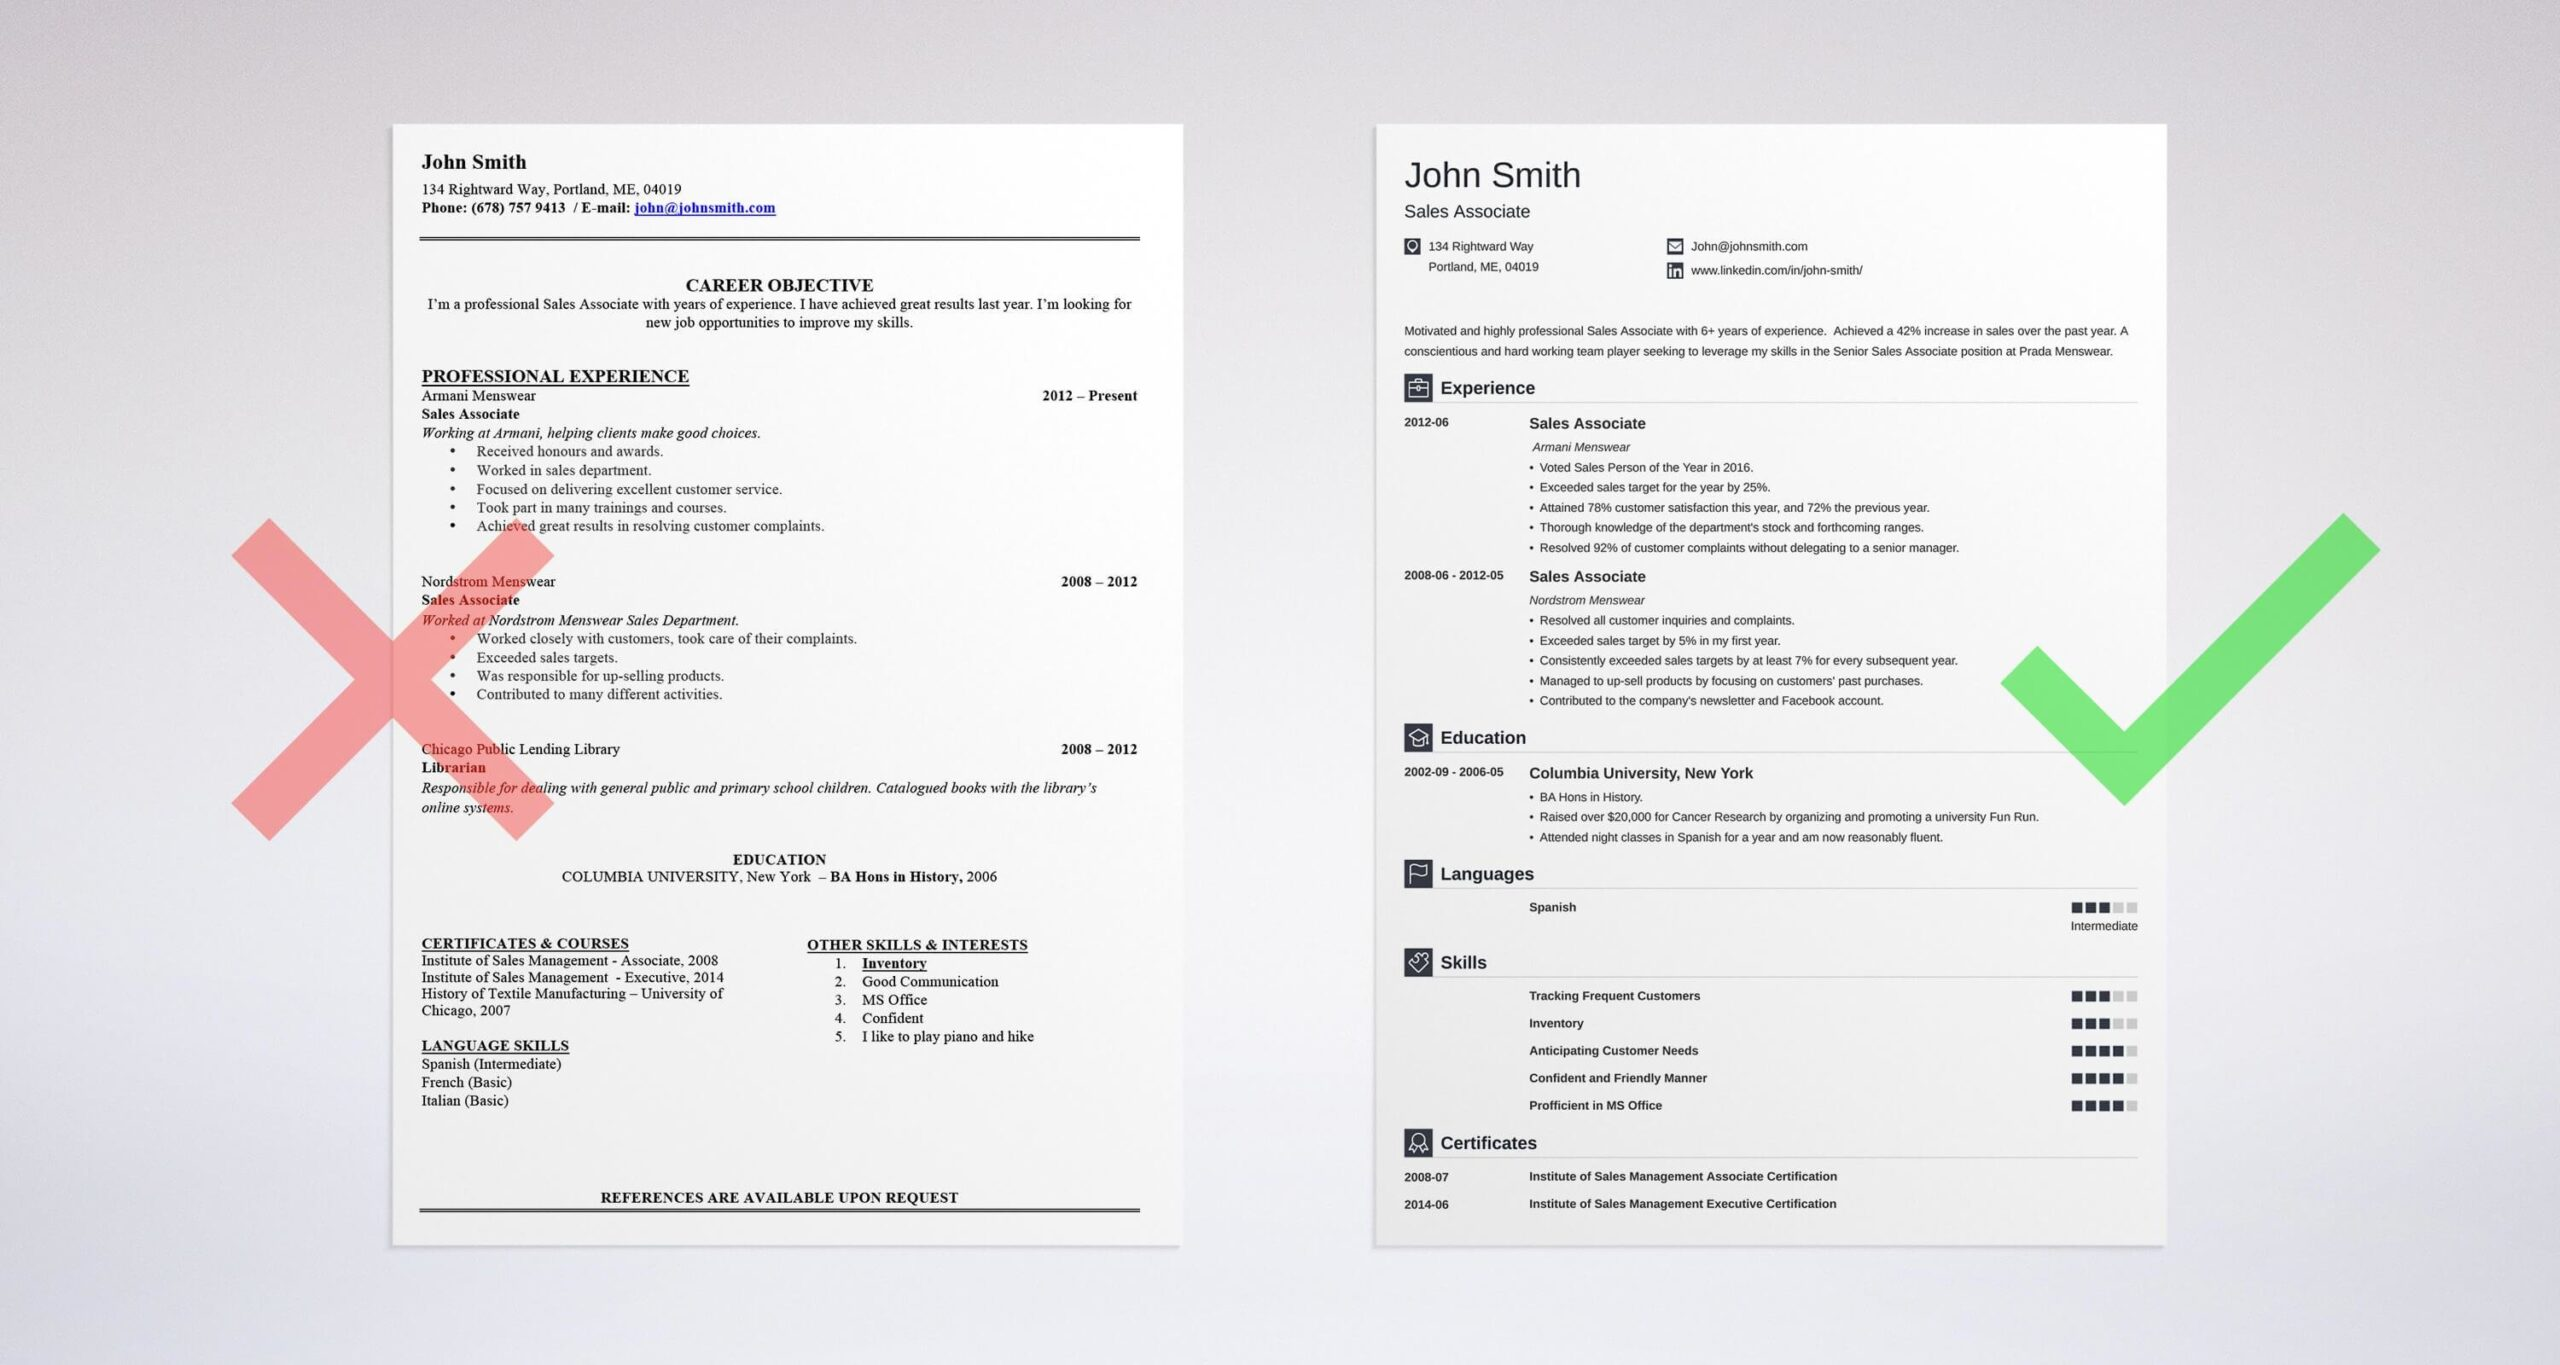 professional resume summary examples statements best short for on template light Resume Best Short Summary For Resume